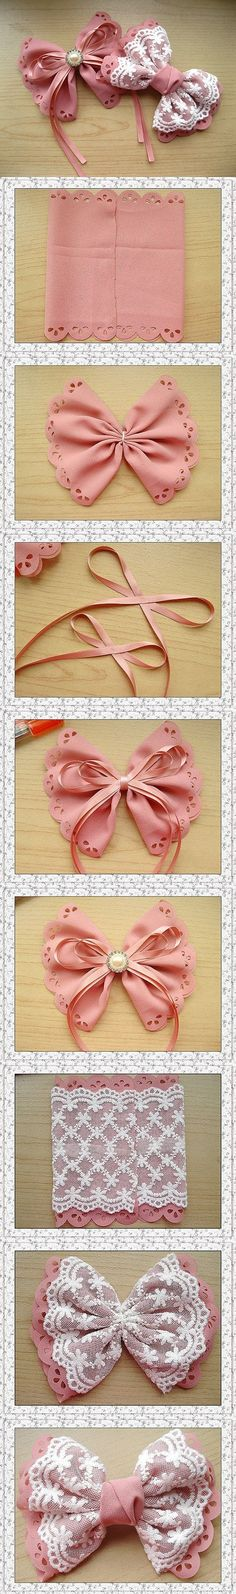 cute DIY bow tutorial - need to try this with SugarVeil On a headband or as a hair clip Lace Bows, Ribbon Bows, Ribbons, Pew Bows, Cute Crafts, Diy And Crafts, Summer Crafts, Fall Crafts, Bow Tutorial